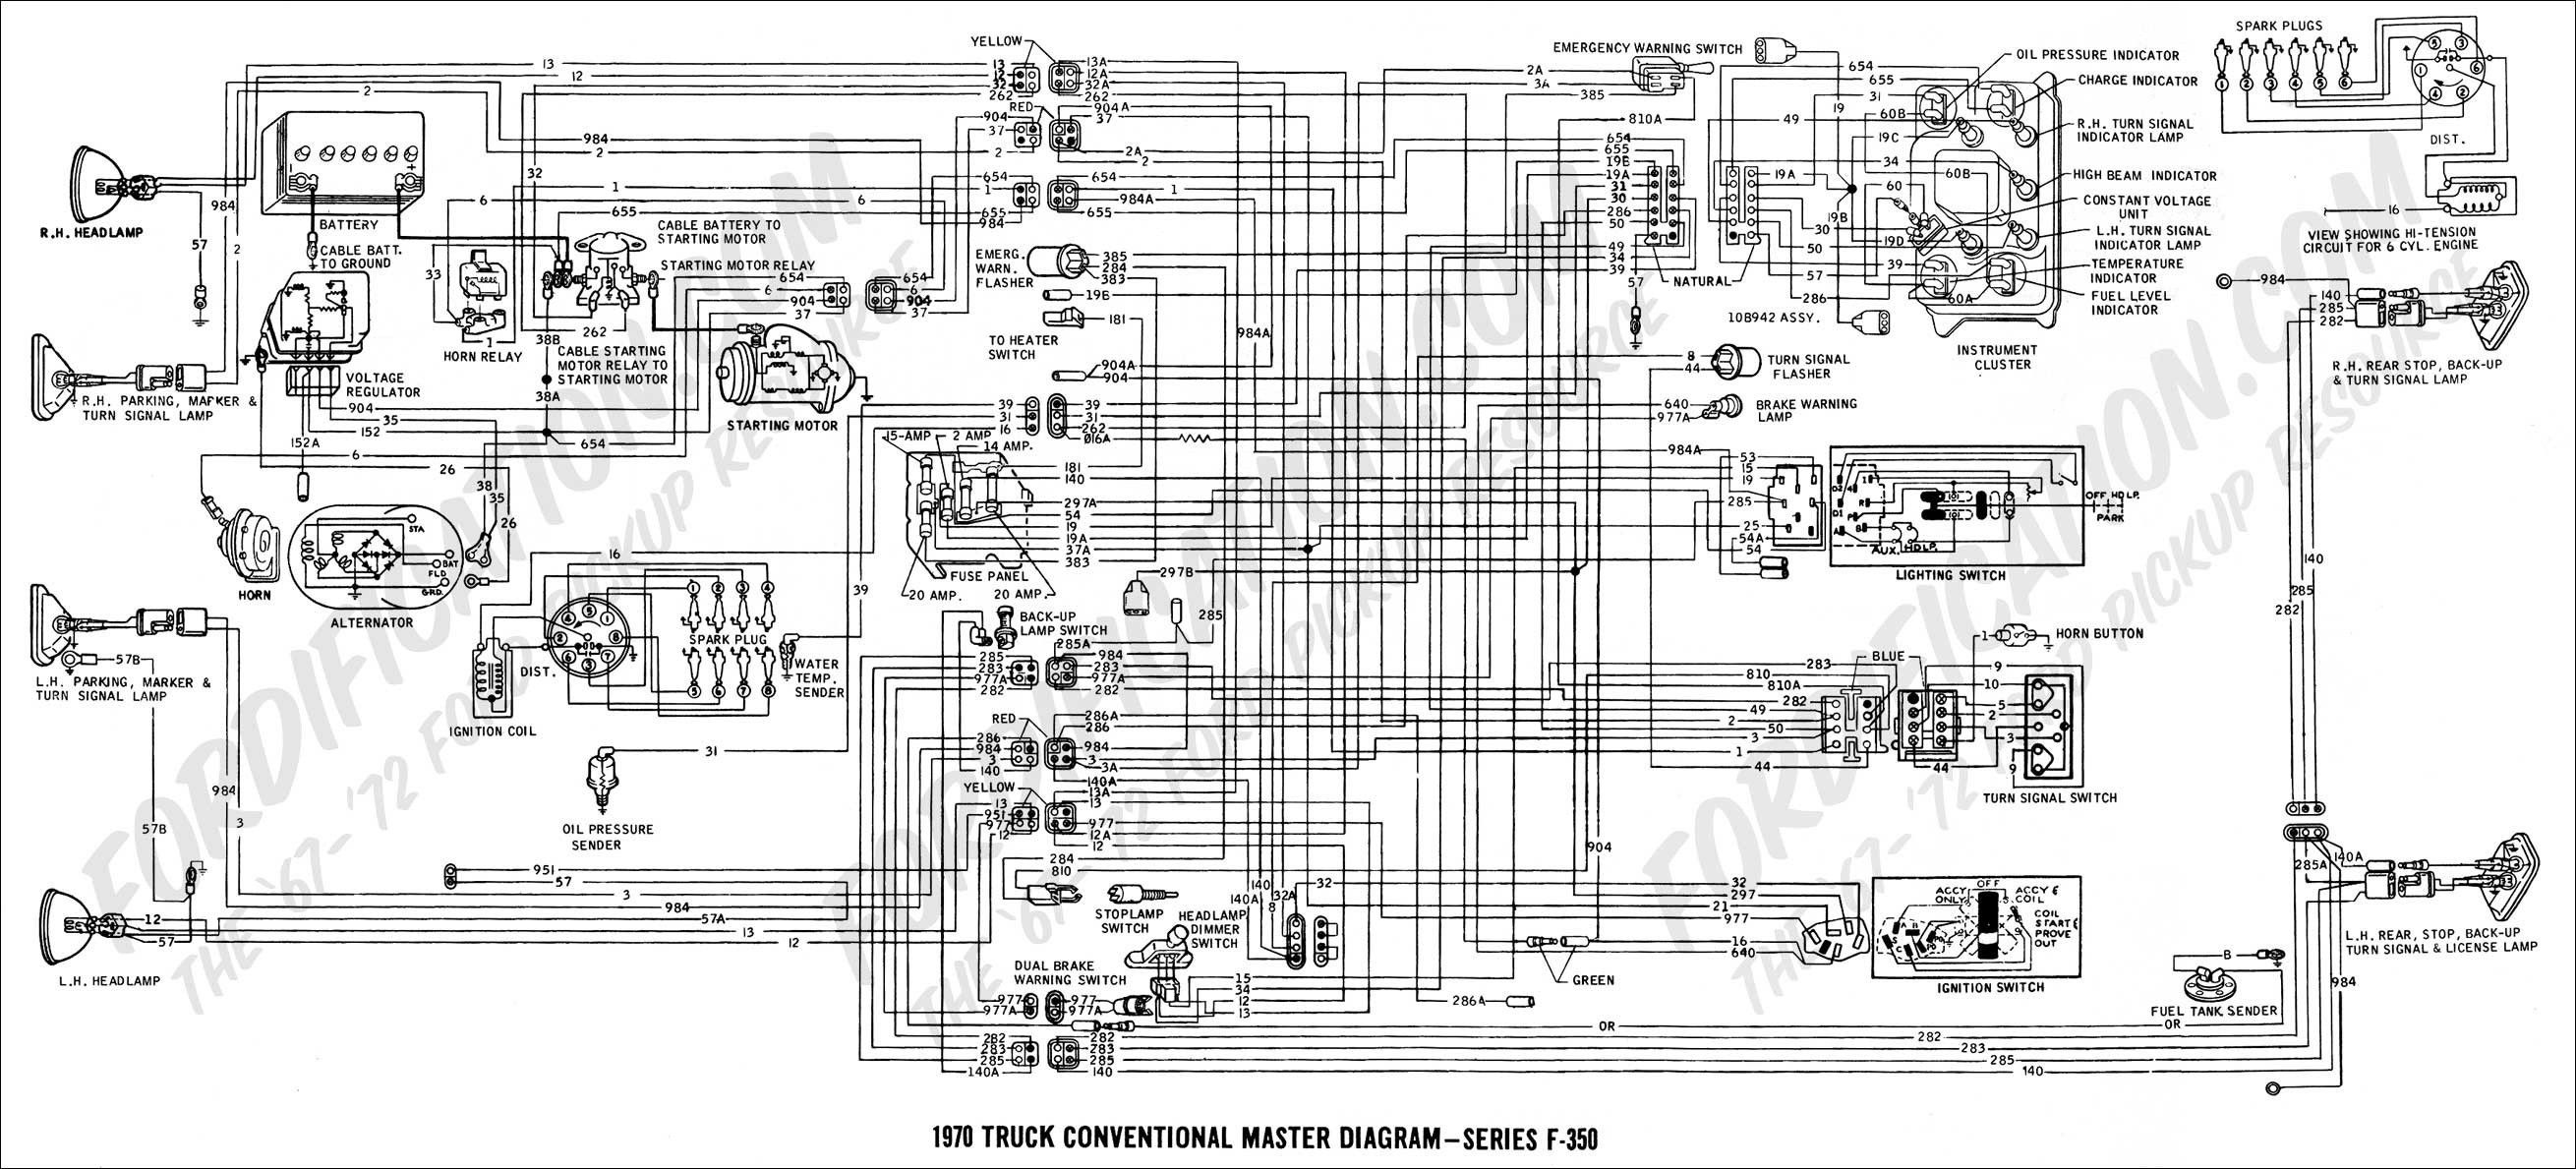 hight resolution of image result for 2006 6 0 powerstroke engine diagram